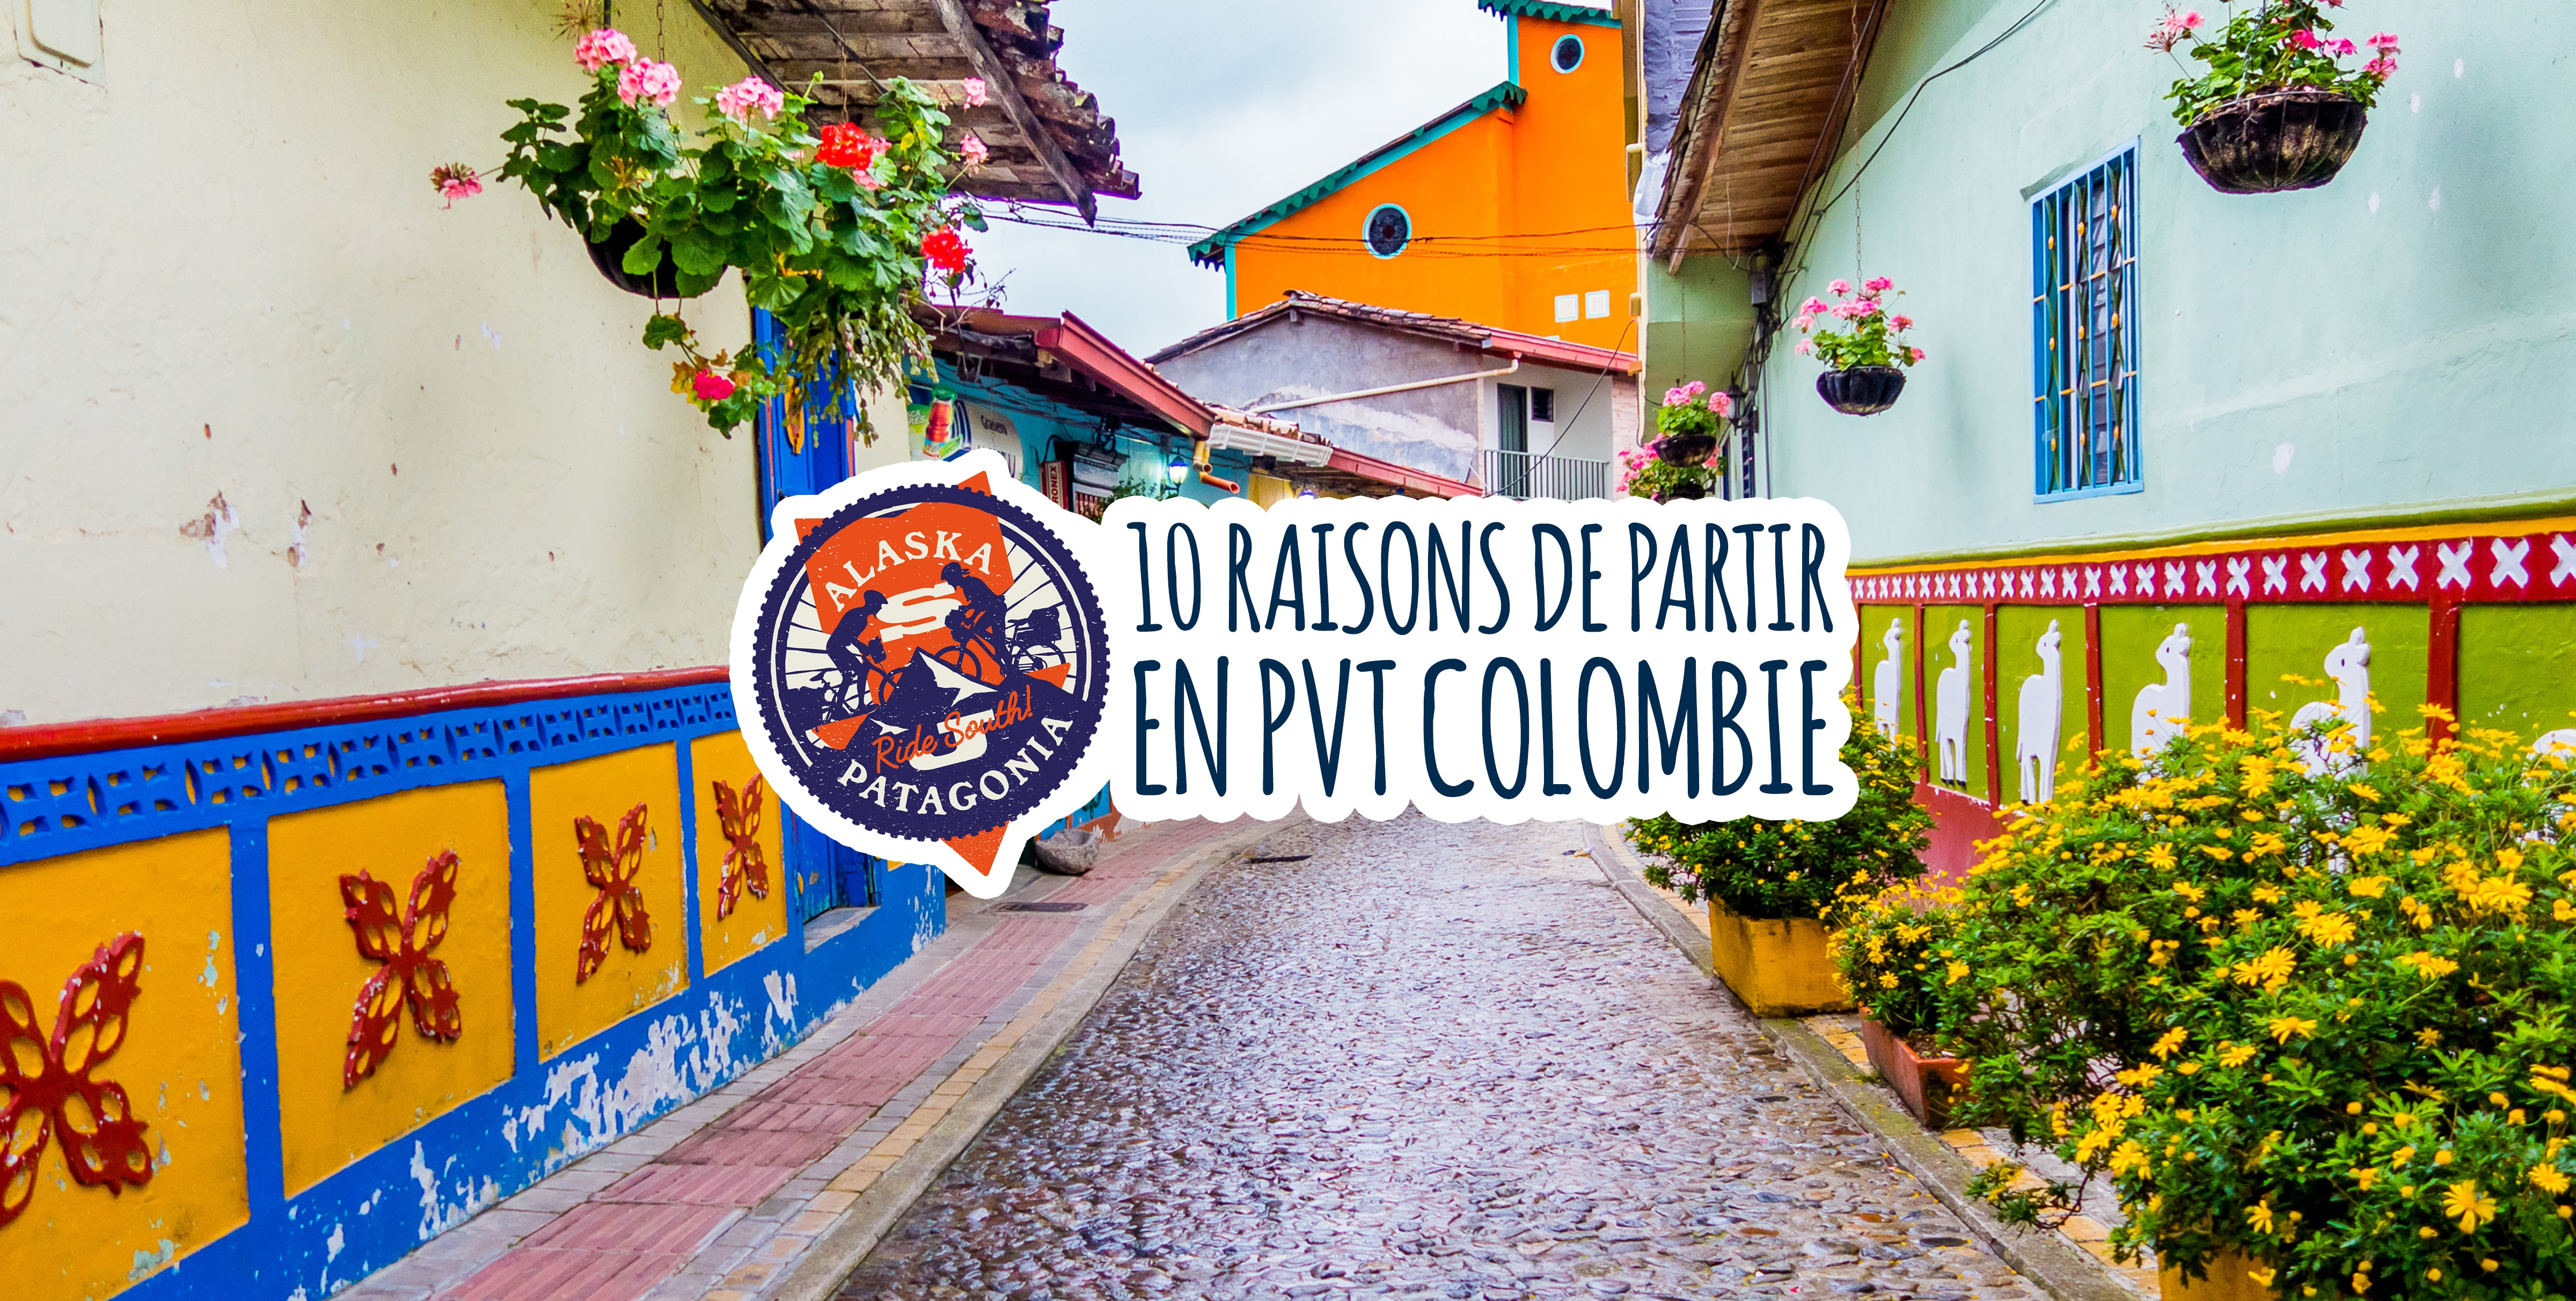 10 raisons de partir en PVT Colombie